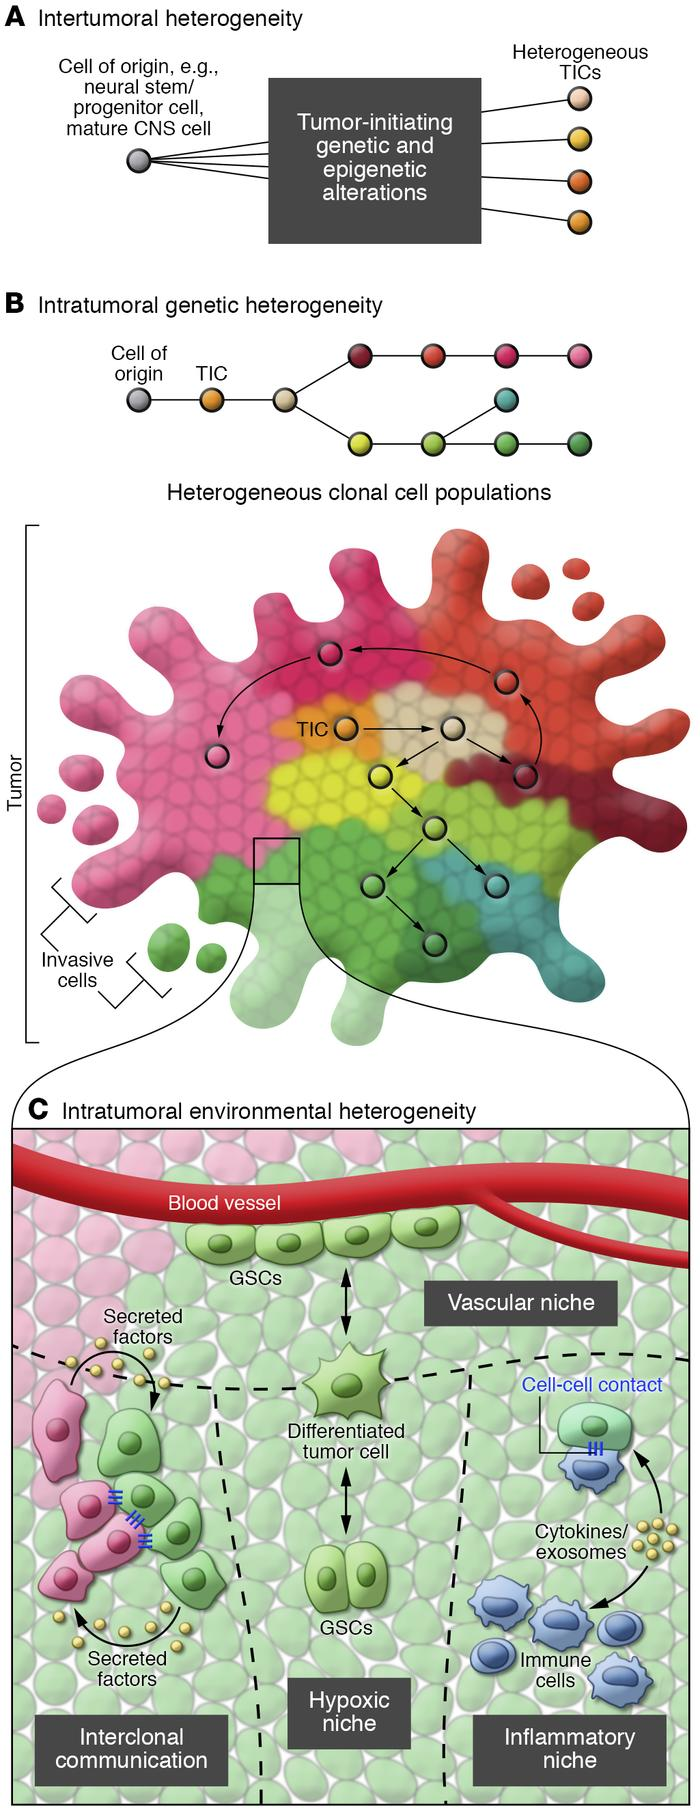 The complexity of inter- and intratumoral heterogeneity in glioblastoma....